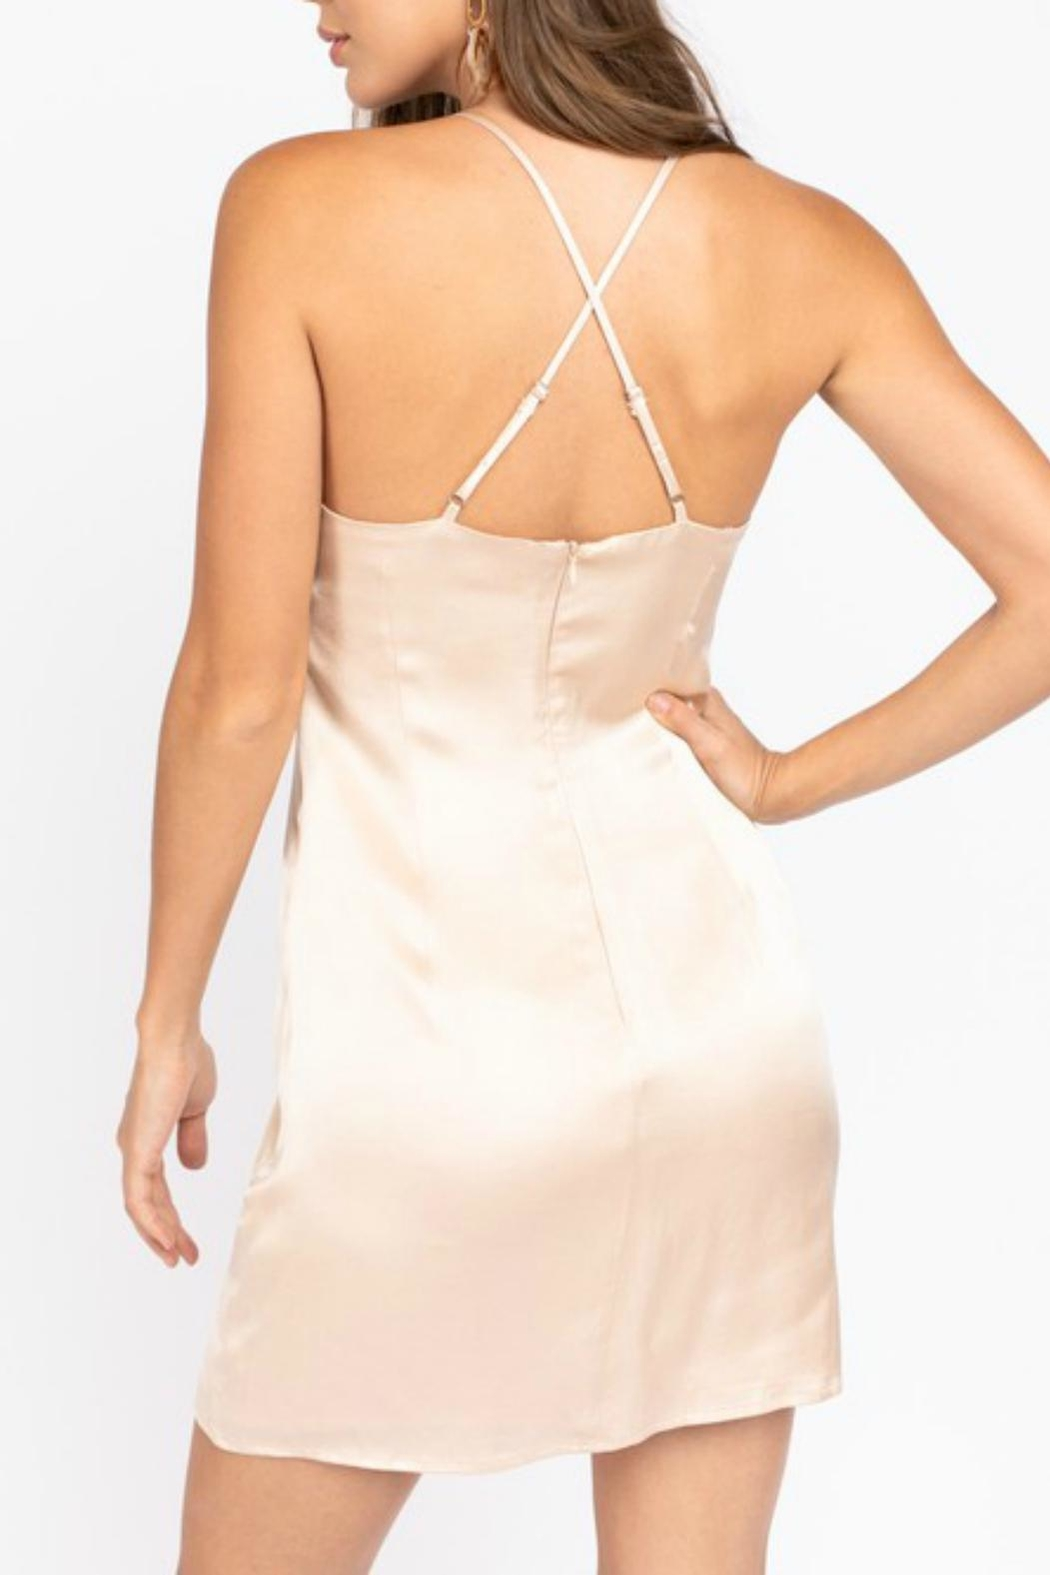 Pretty Little Things Champagne Slip Dress - Front Full Image